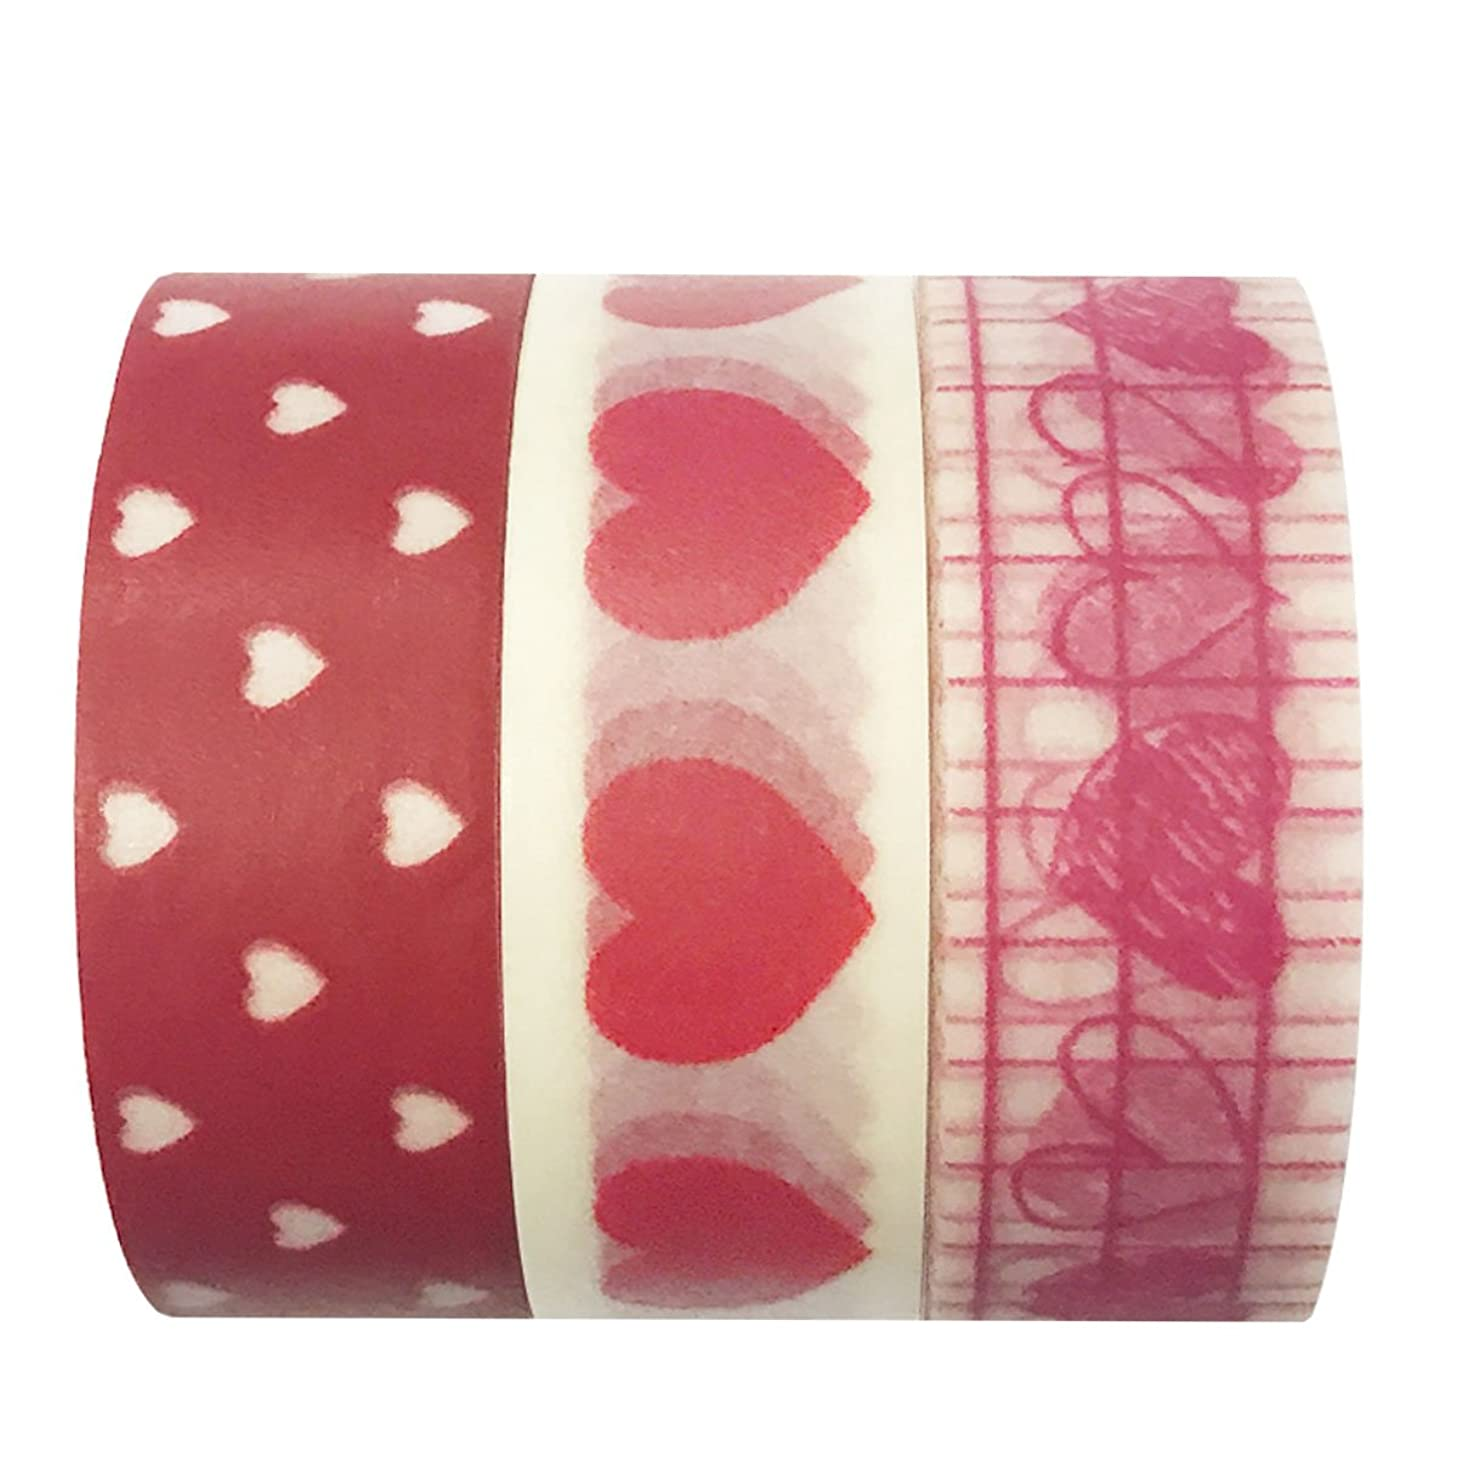 Wrapables Sweet Hearts Washi Masking Tape, 10M by 15mm, Set of 3